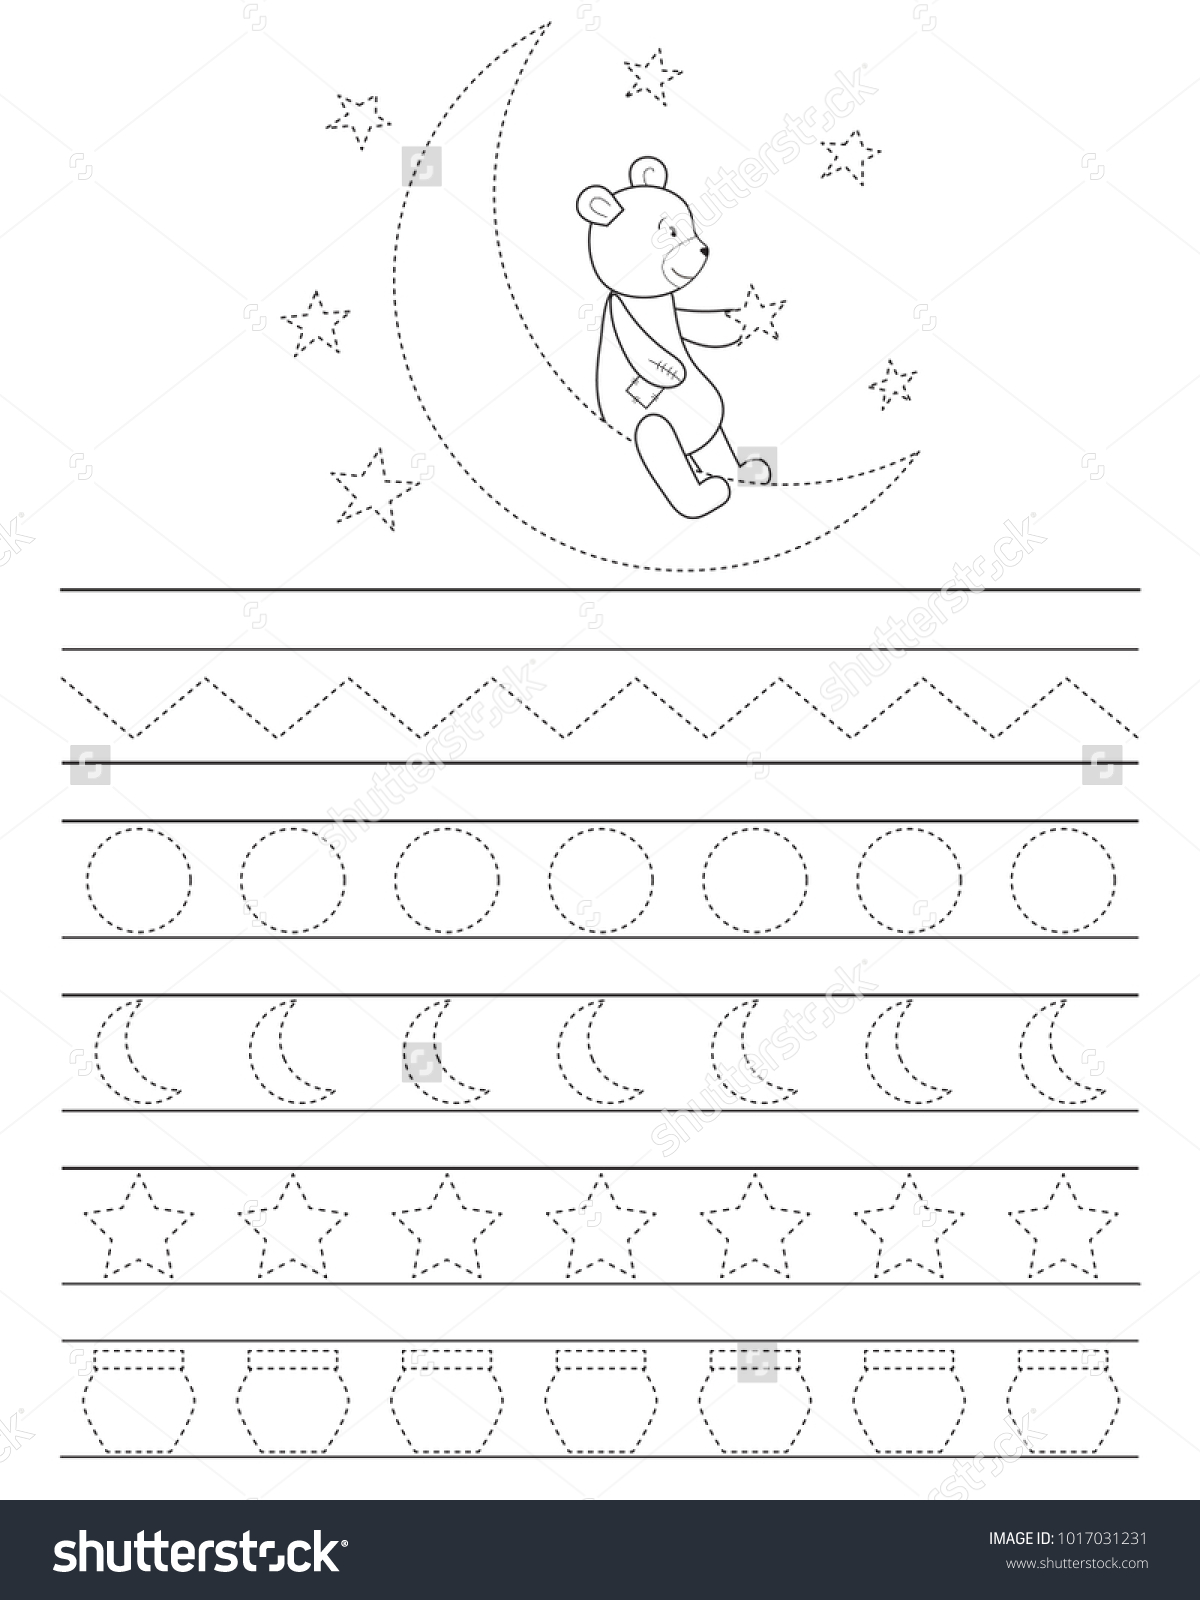 Handwriting Practice Sheet For Kids Good Night Teddy Bear Printable Worksheet Coloring Page